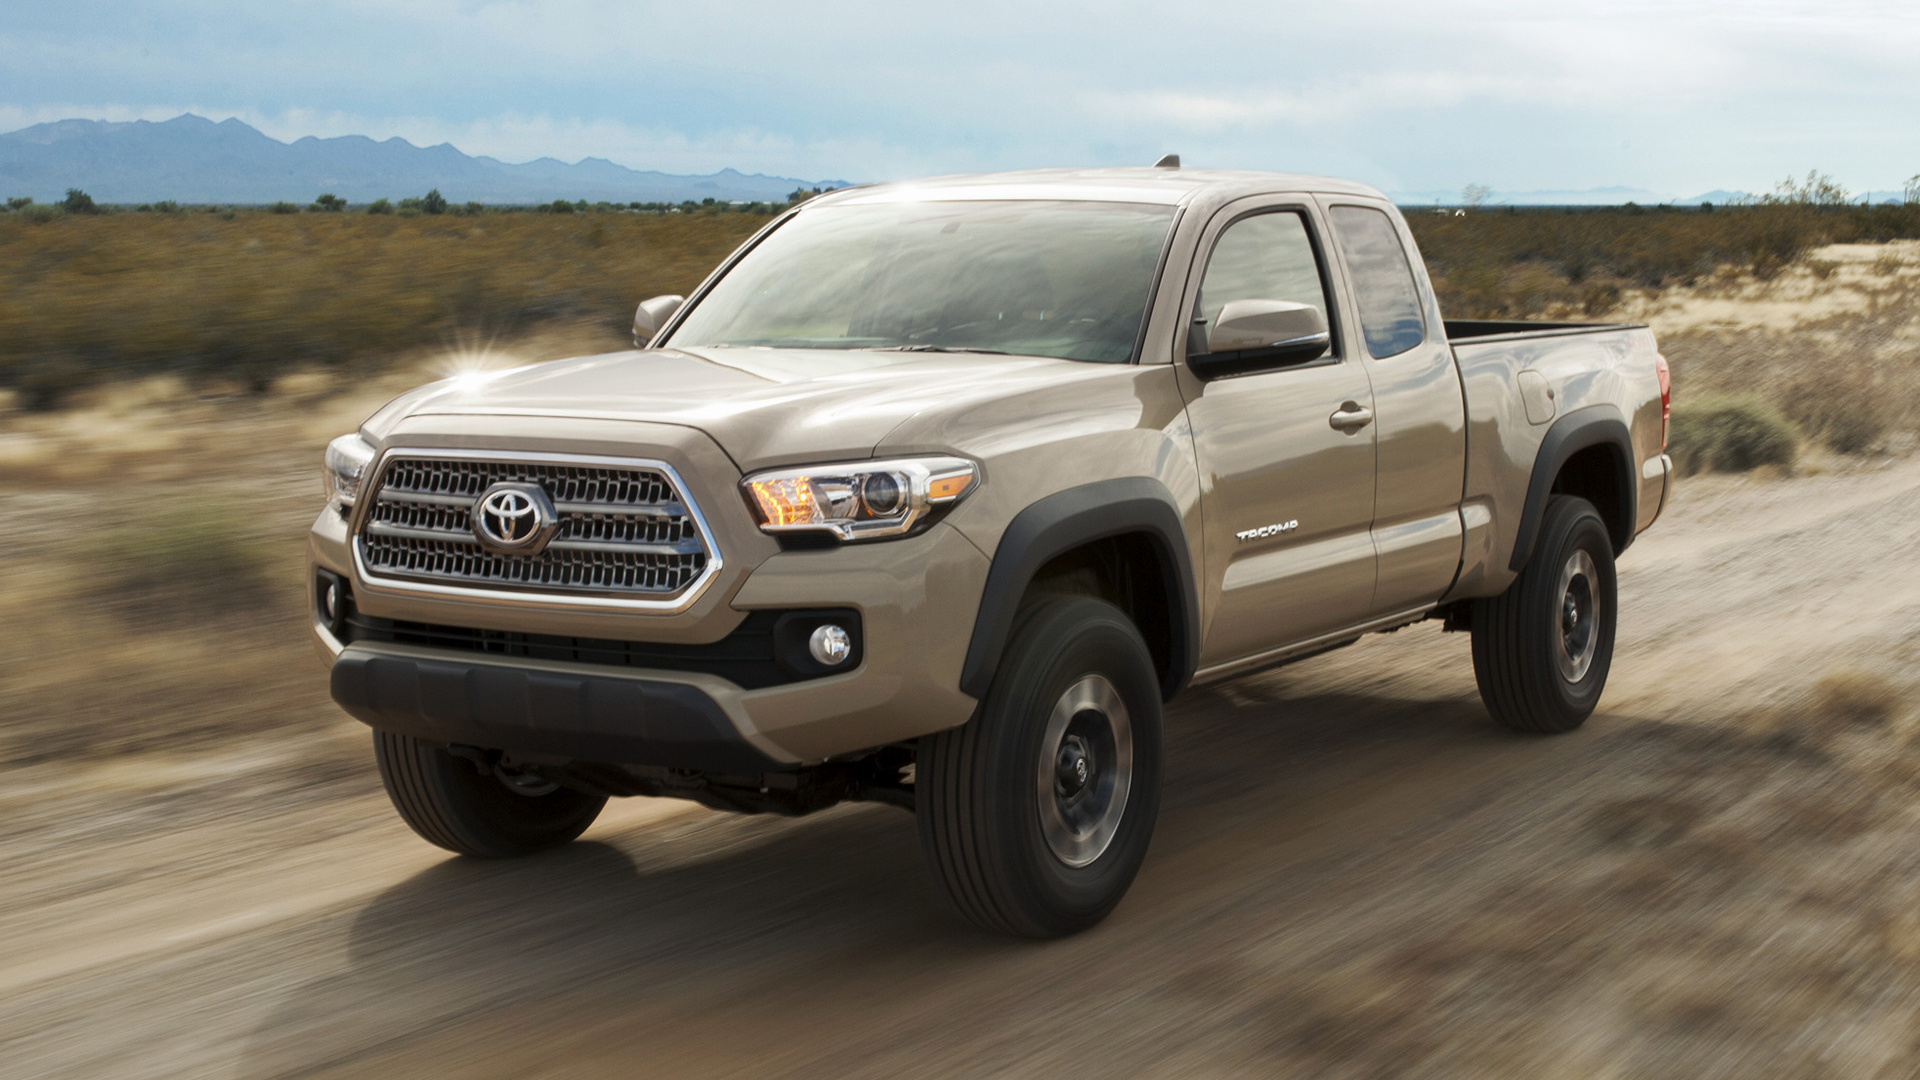 toyota tacoma trd off road access cab 2016 wallpapers and hd images. Black Bedroom Furniture Sets. Home Design Ideas